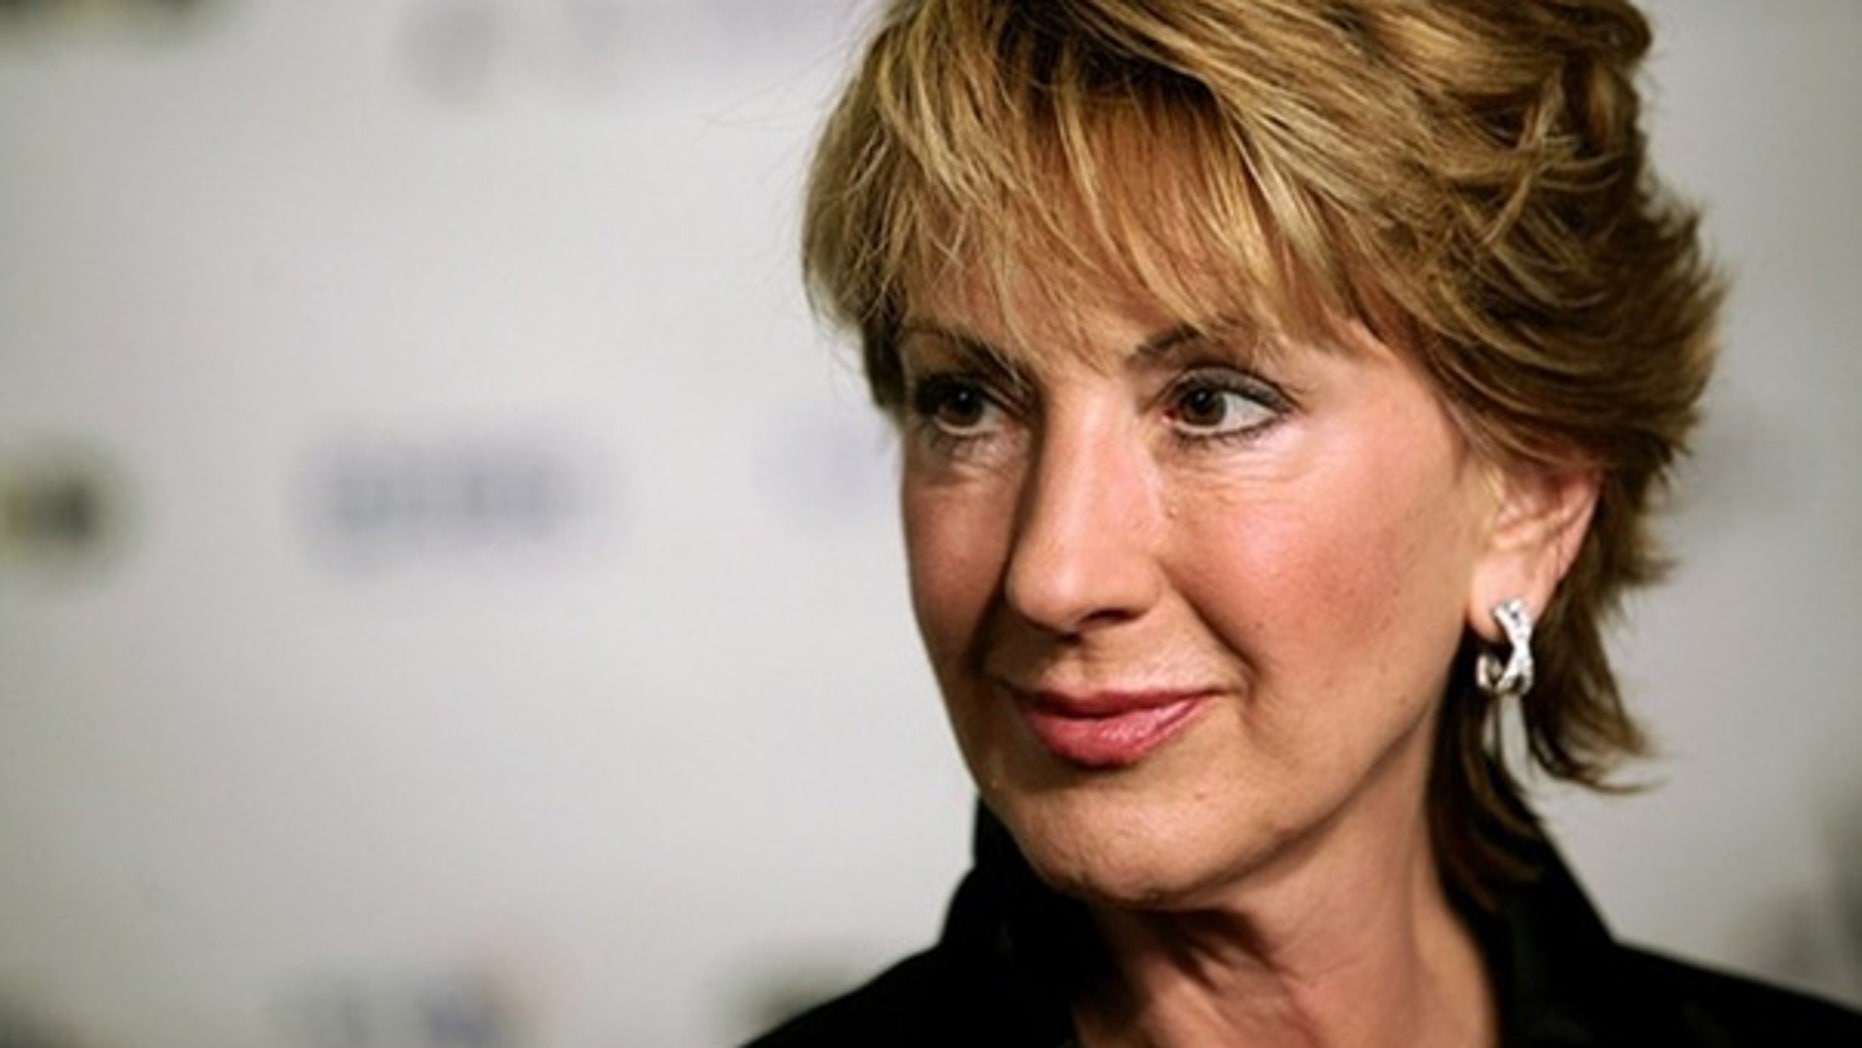 Carly Fiorina is preparing to announce her plans for the U.S. Senate. (AP)